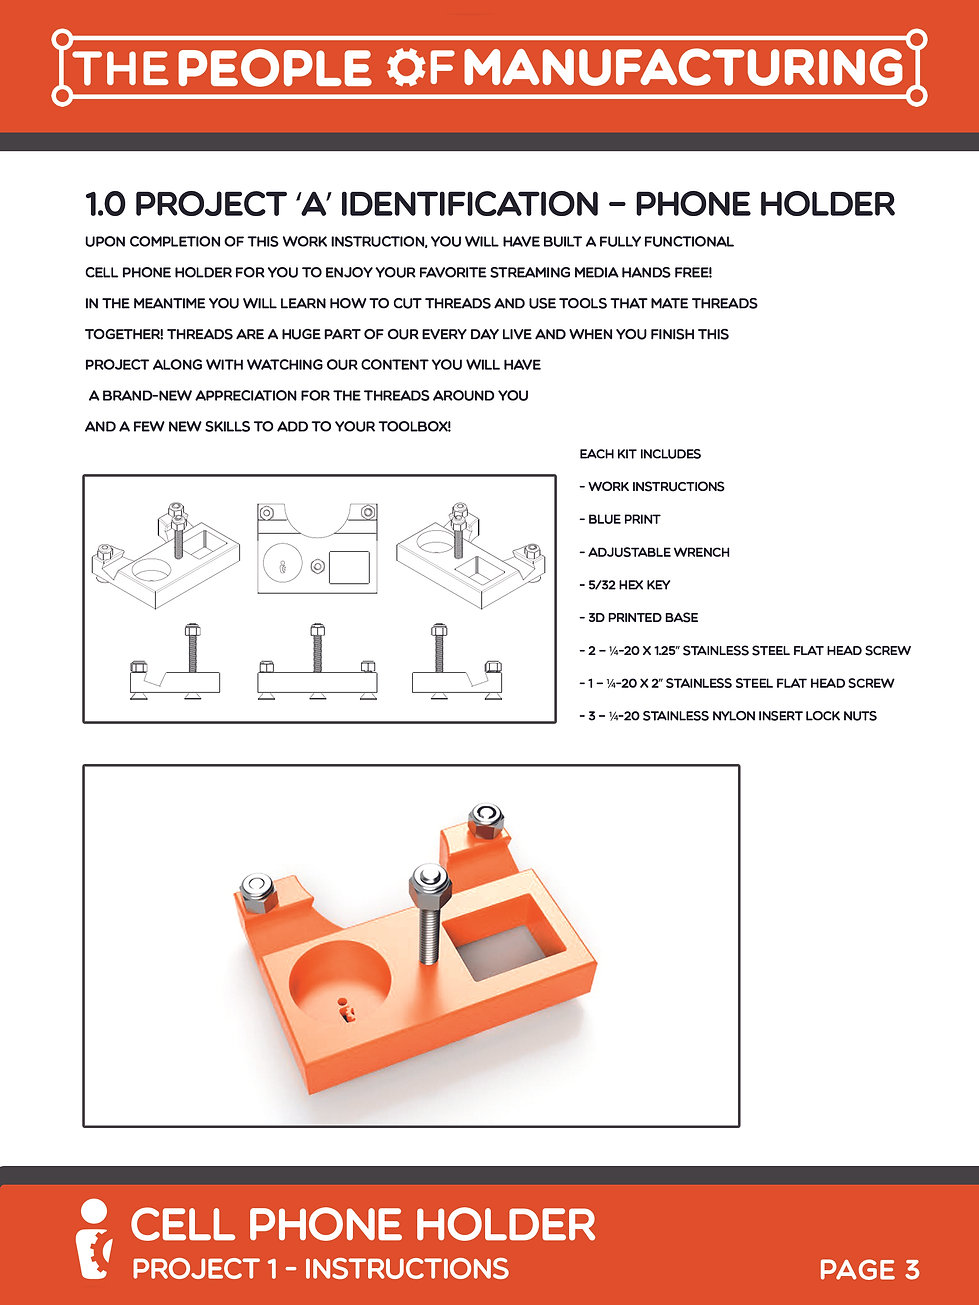 Cell Phone Page 3 - PRO a INDENT.jpg